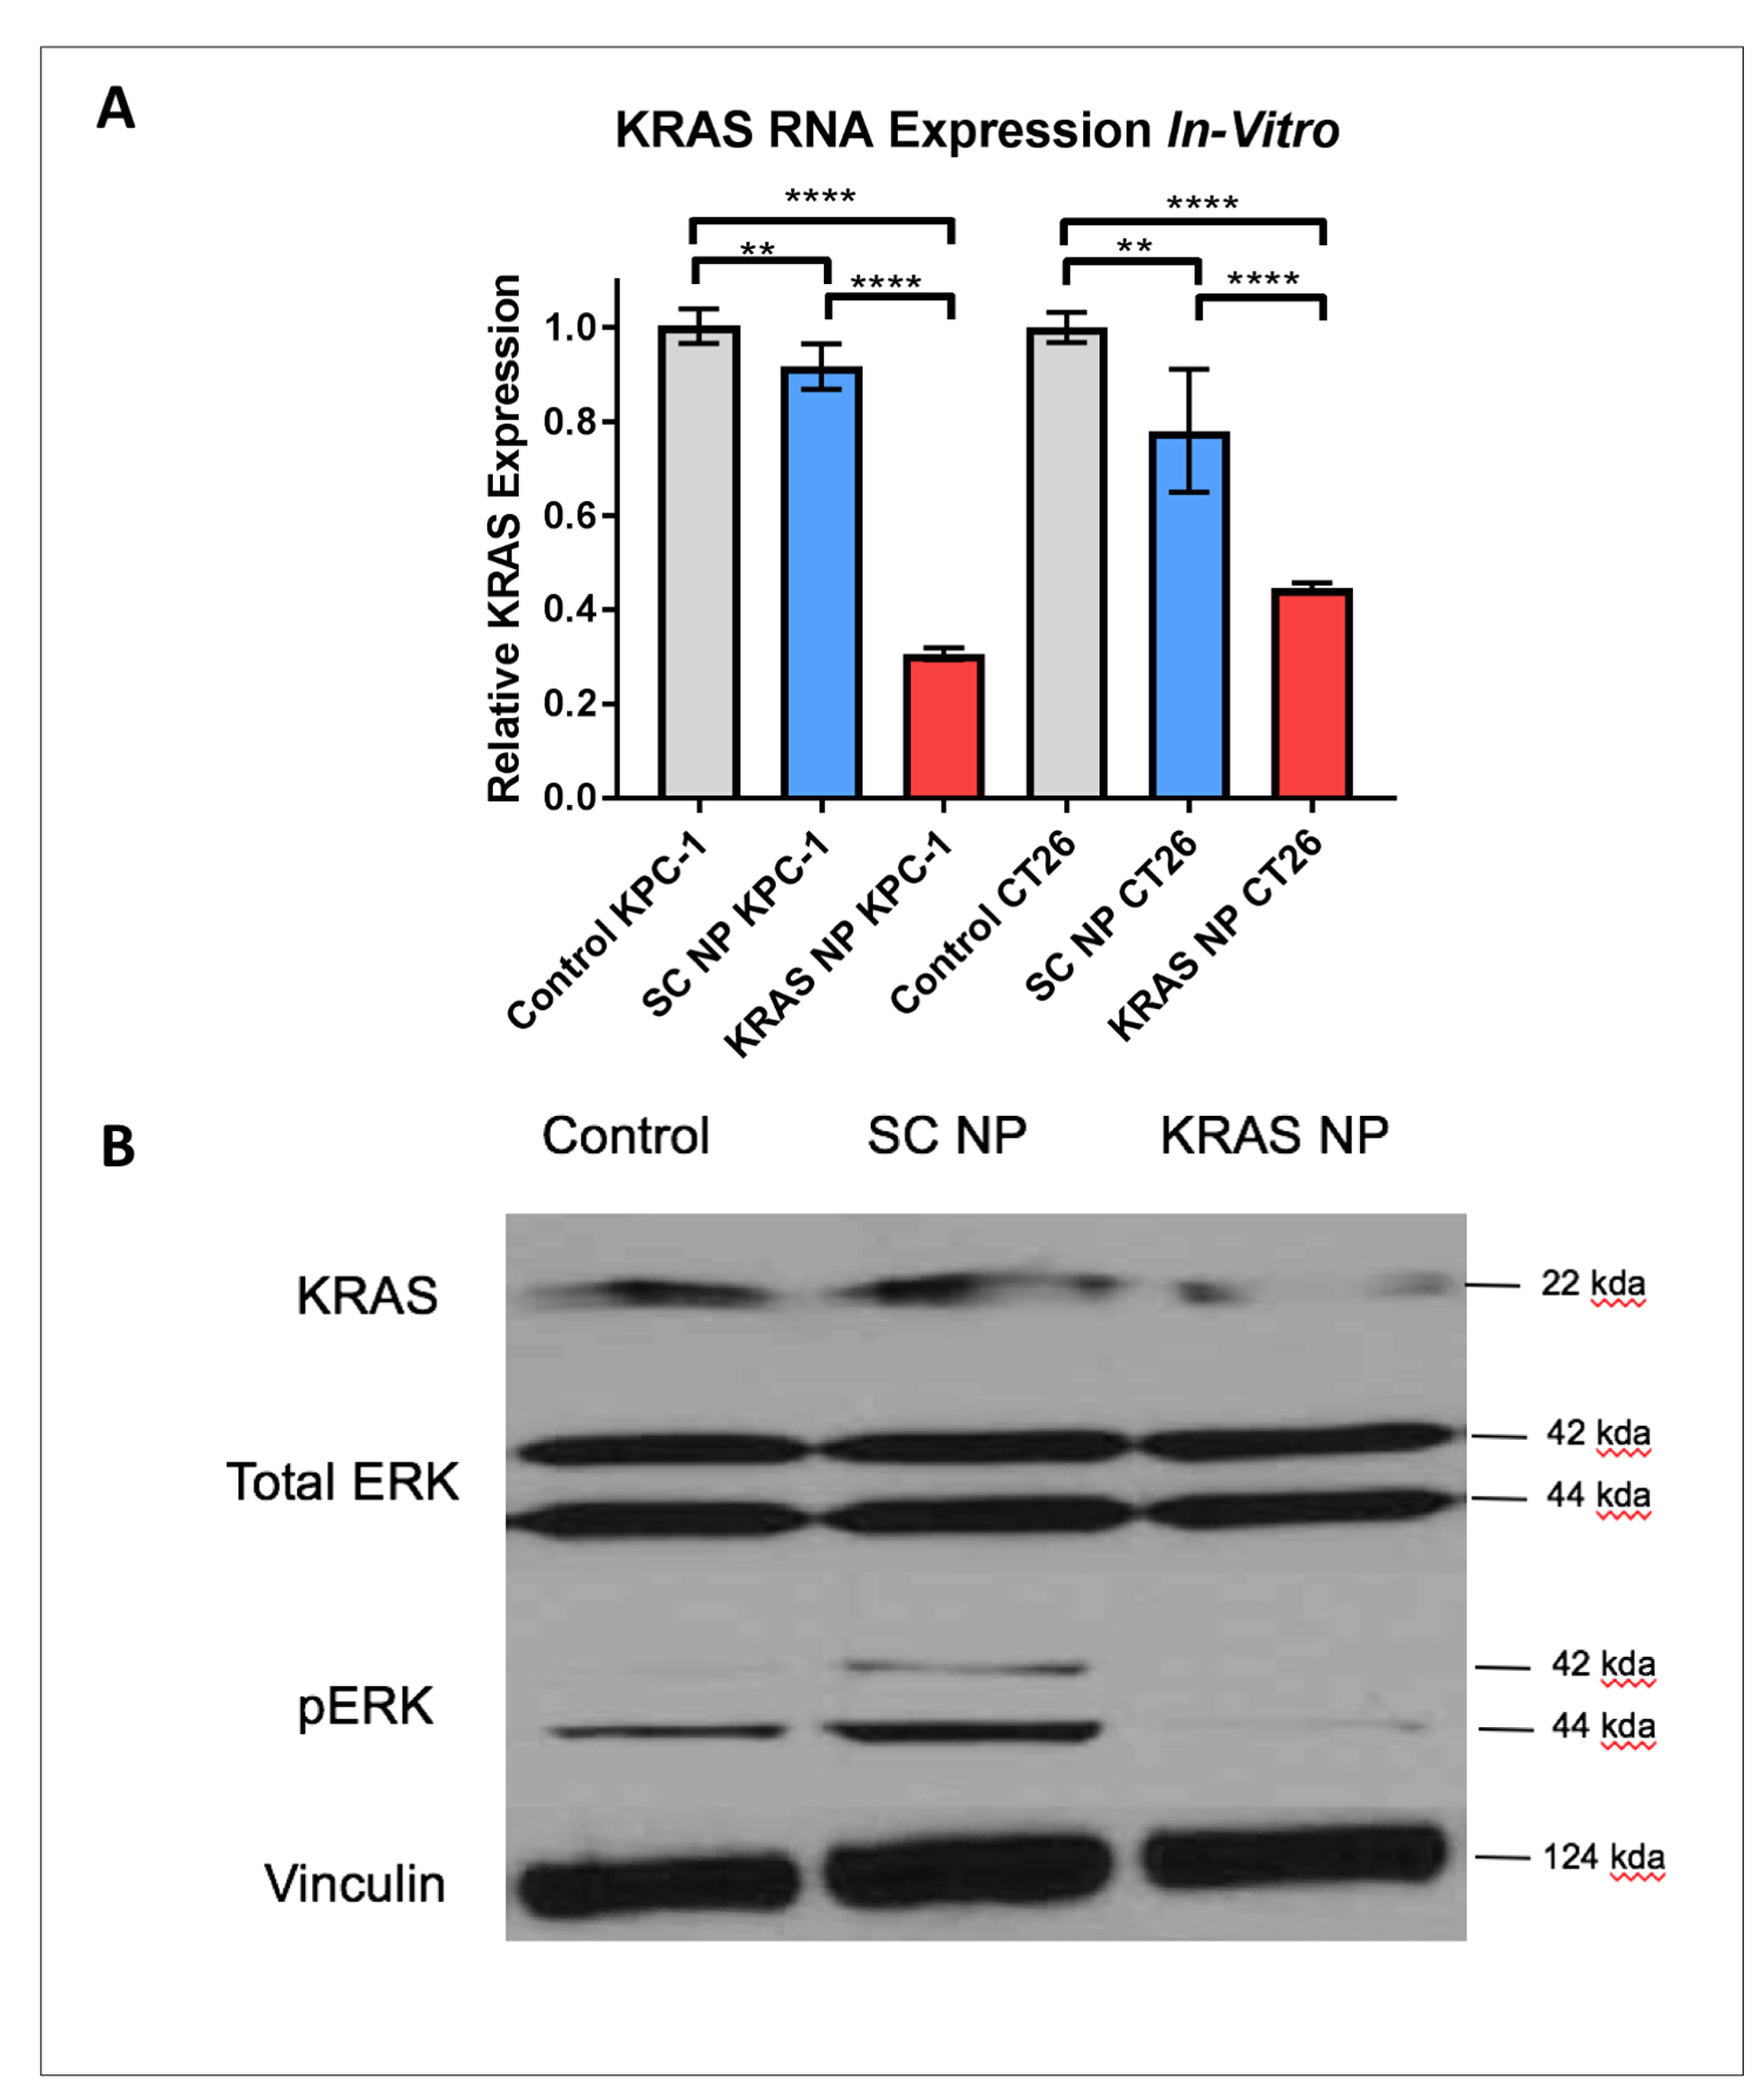 KRAS expression is reduced significantly in KPC-1 pancreatic cancer cells and CT26 colorectal cancer cells.